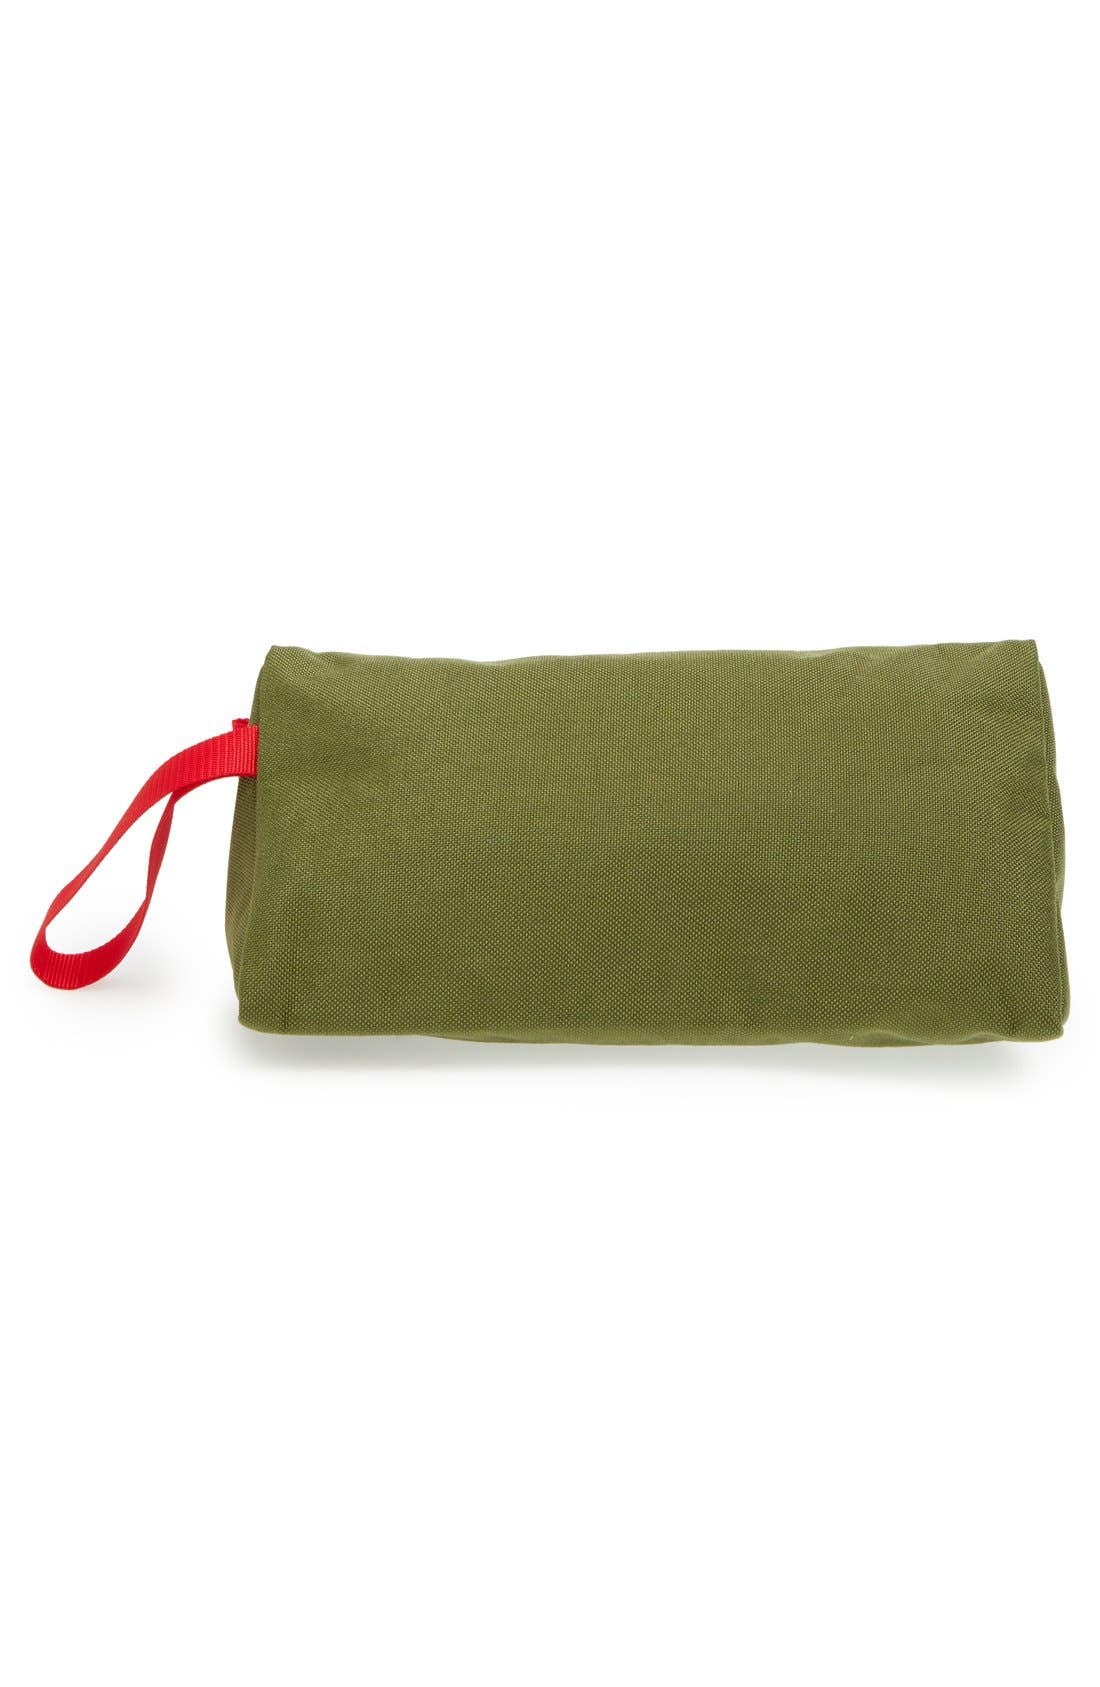 TOPO DESIGNS,                             Dopp Kit,                             Alternate thumbnail 3, color,                             OLIVE